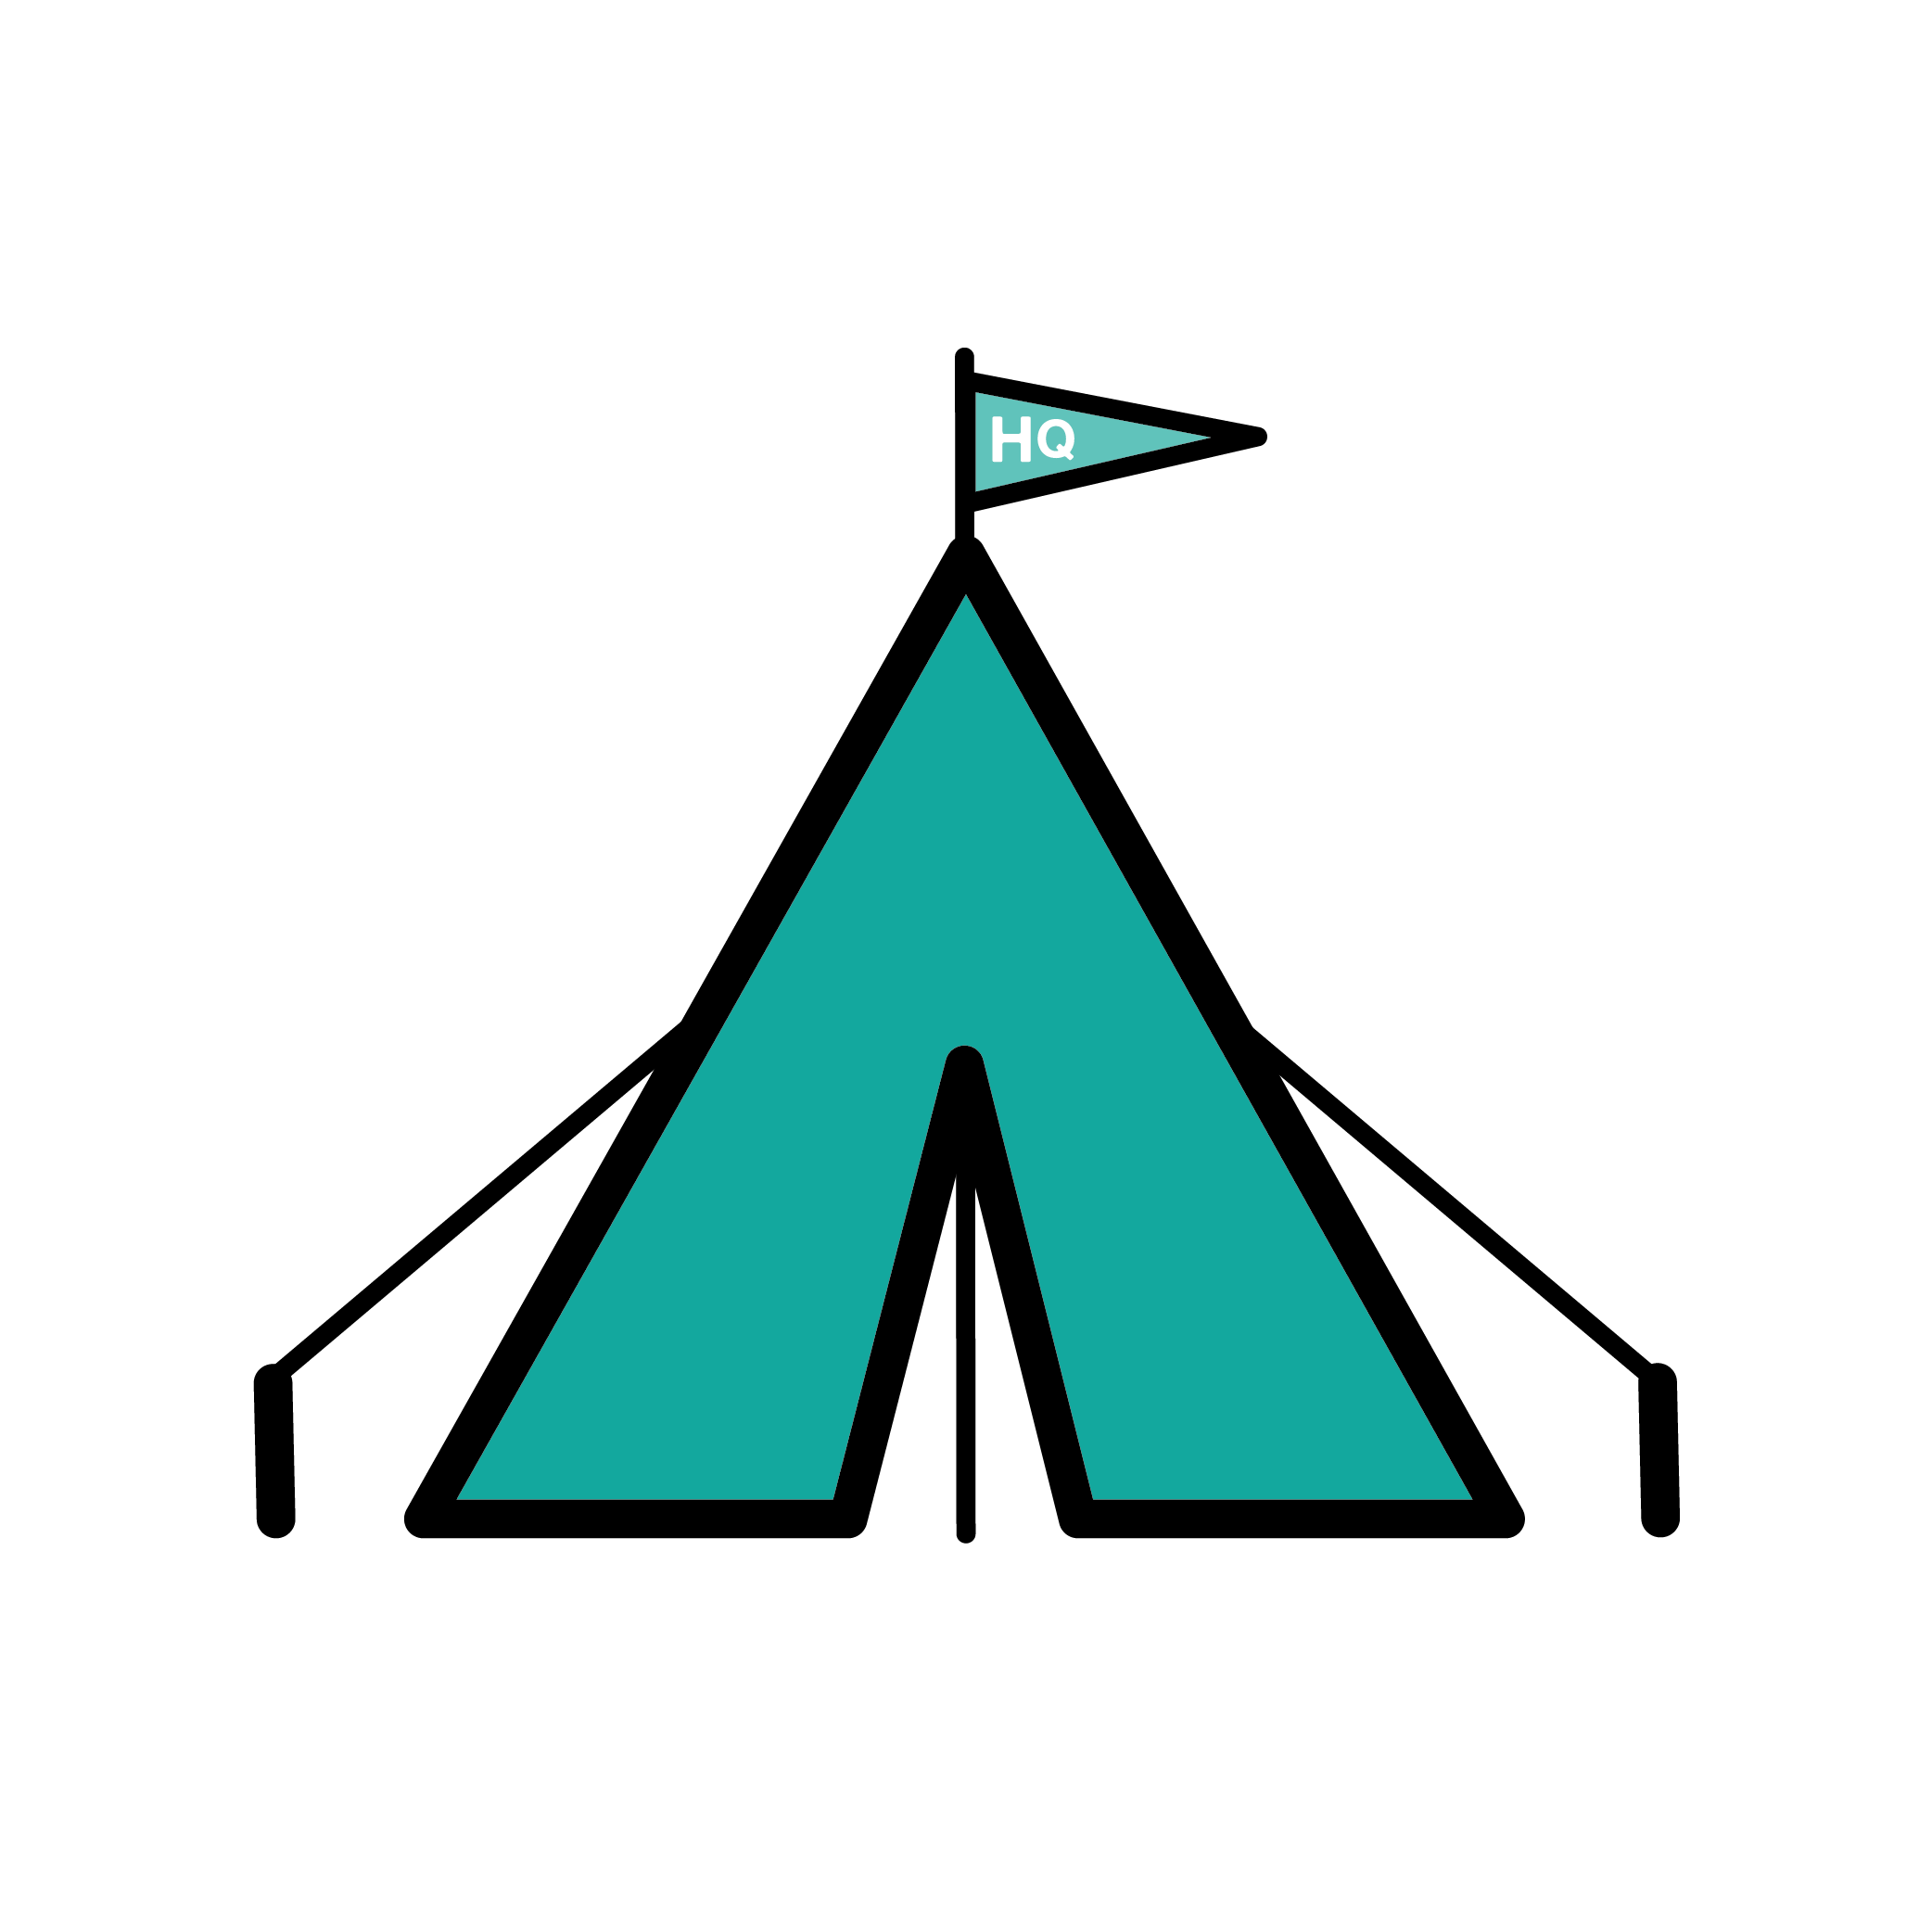 compliance hq icon-01 2.png